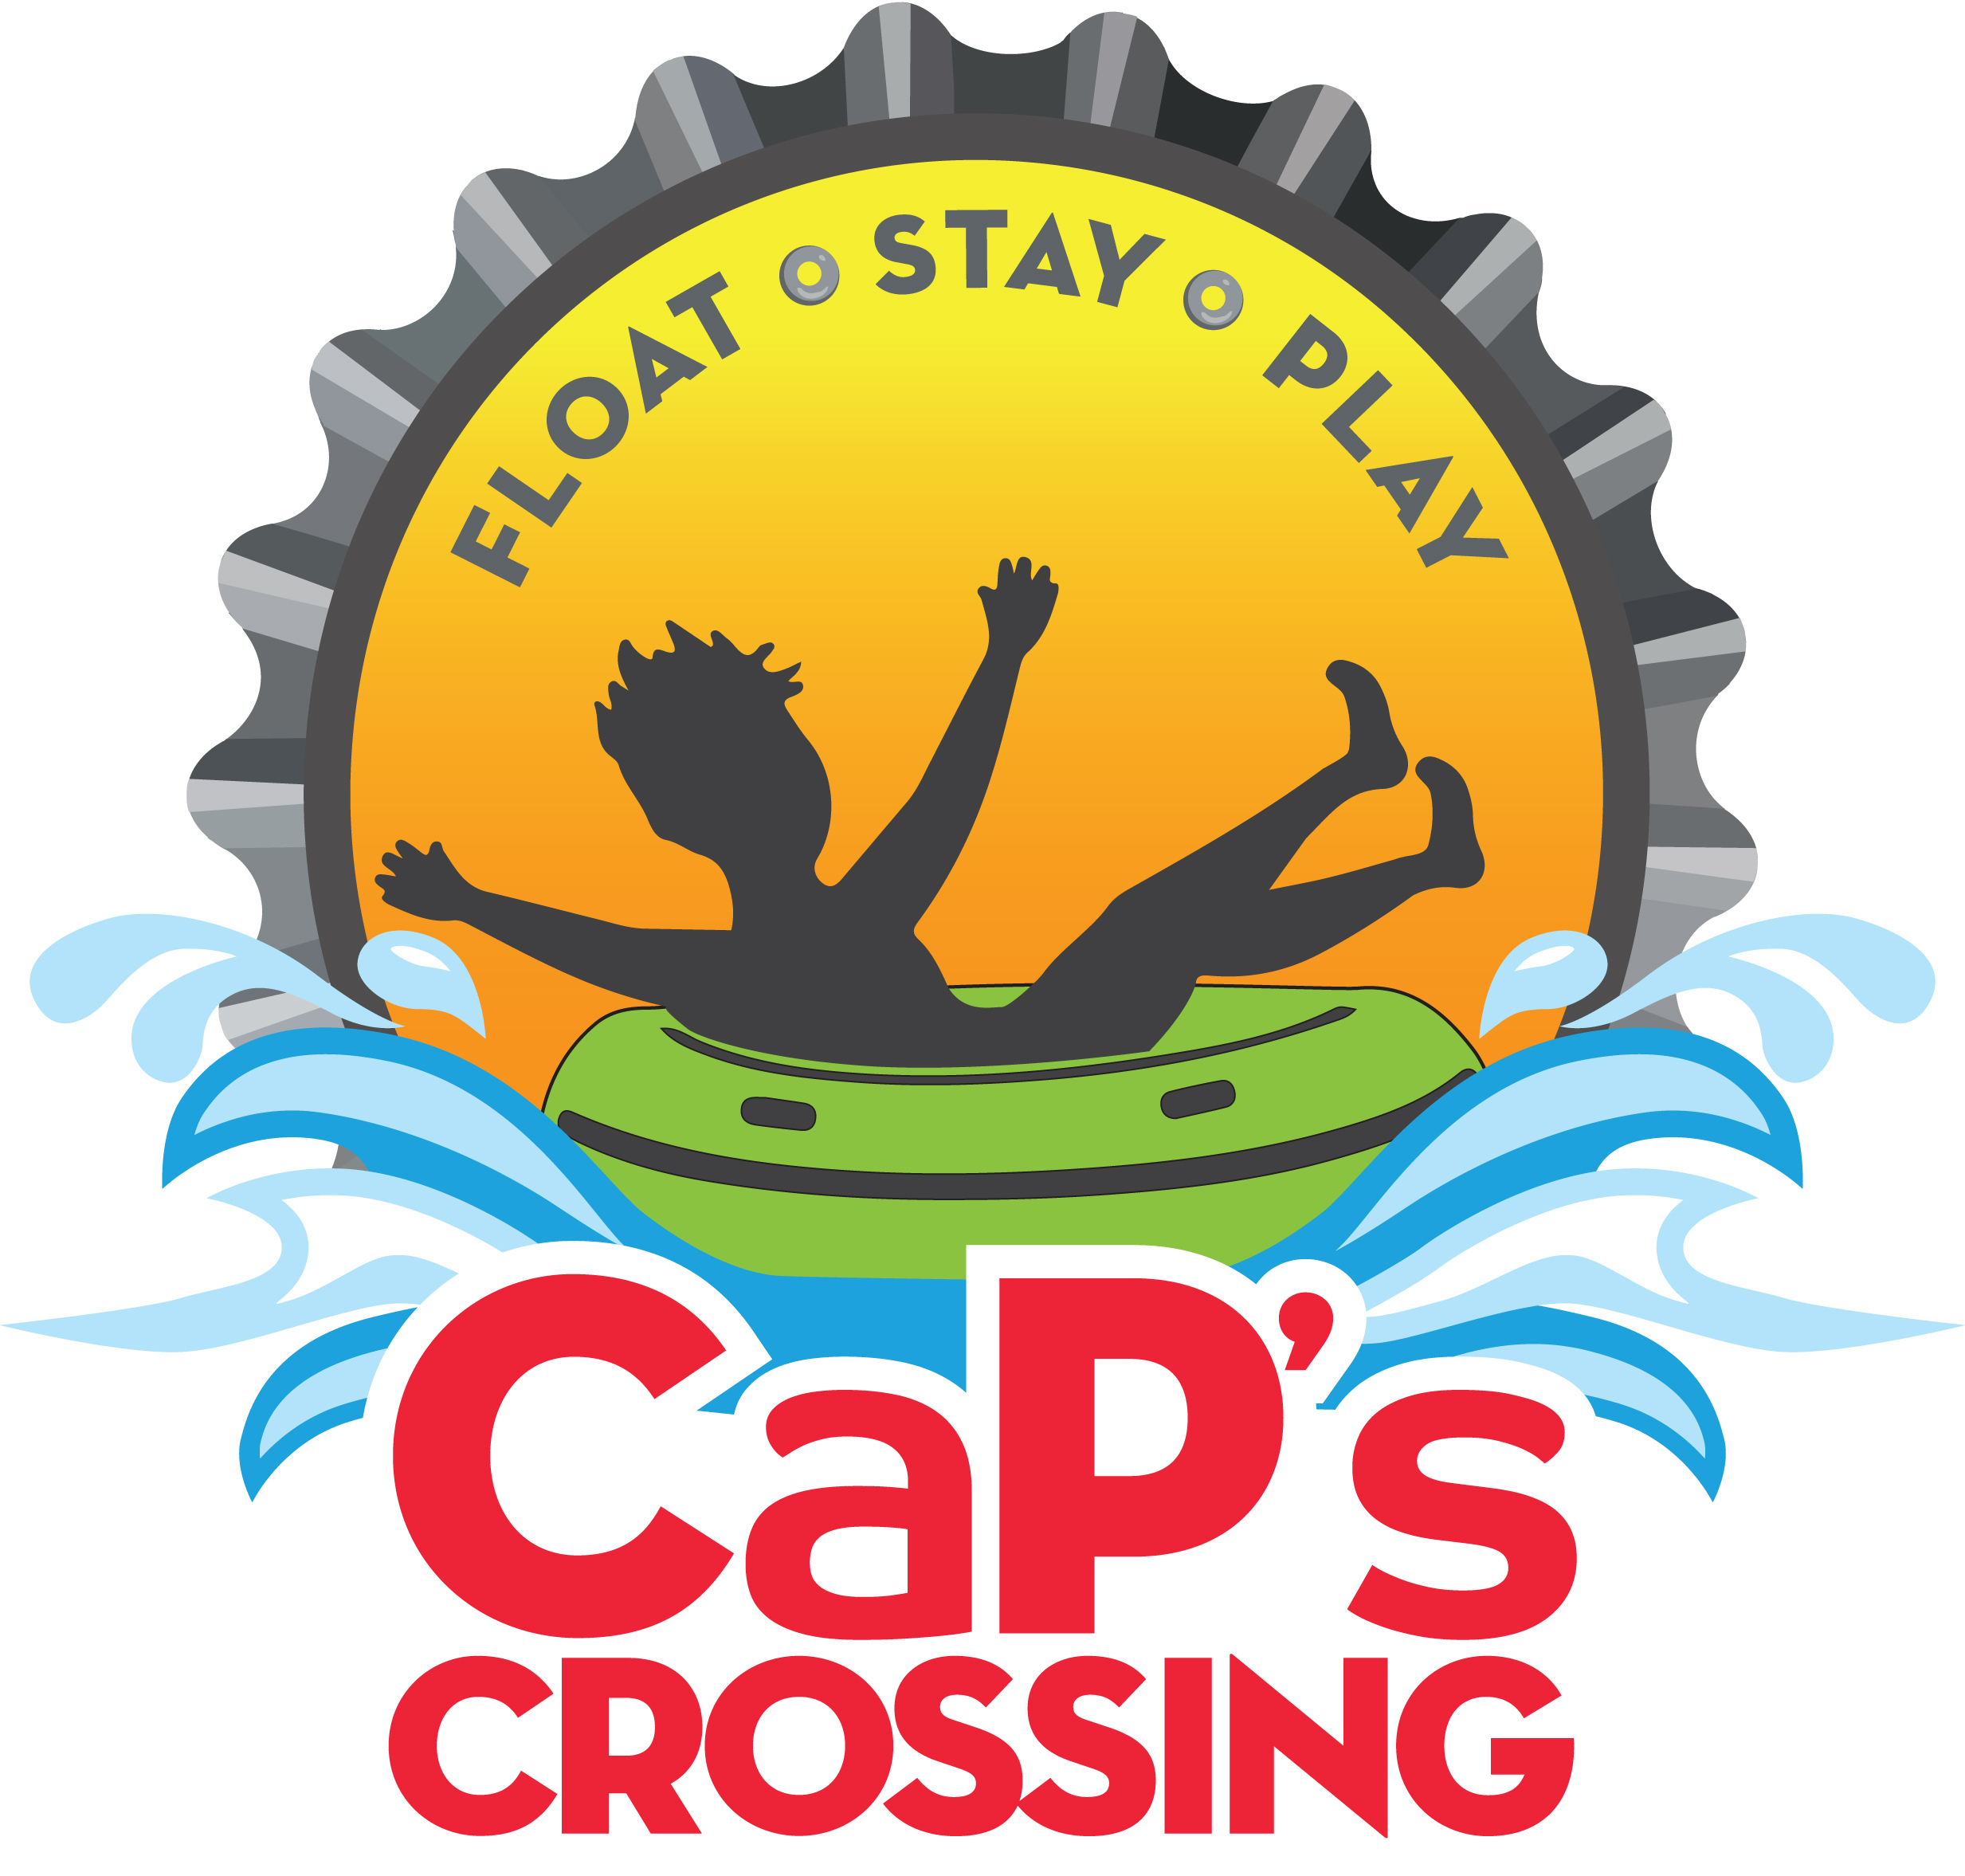 CaP's Crossing